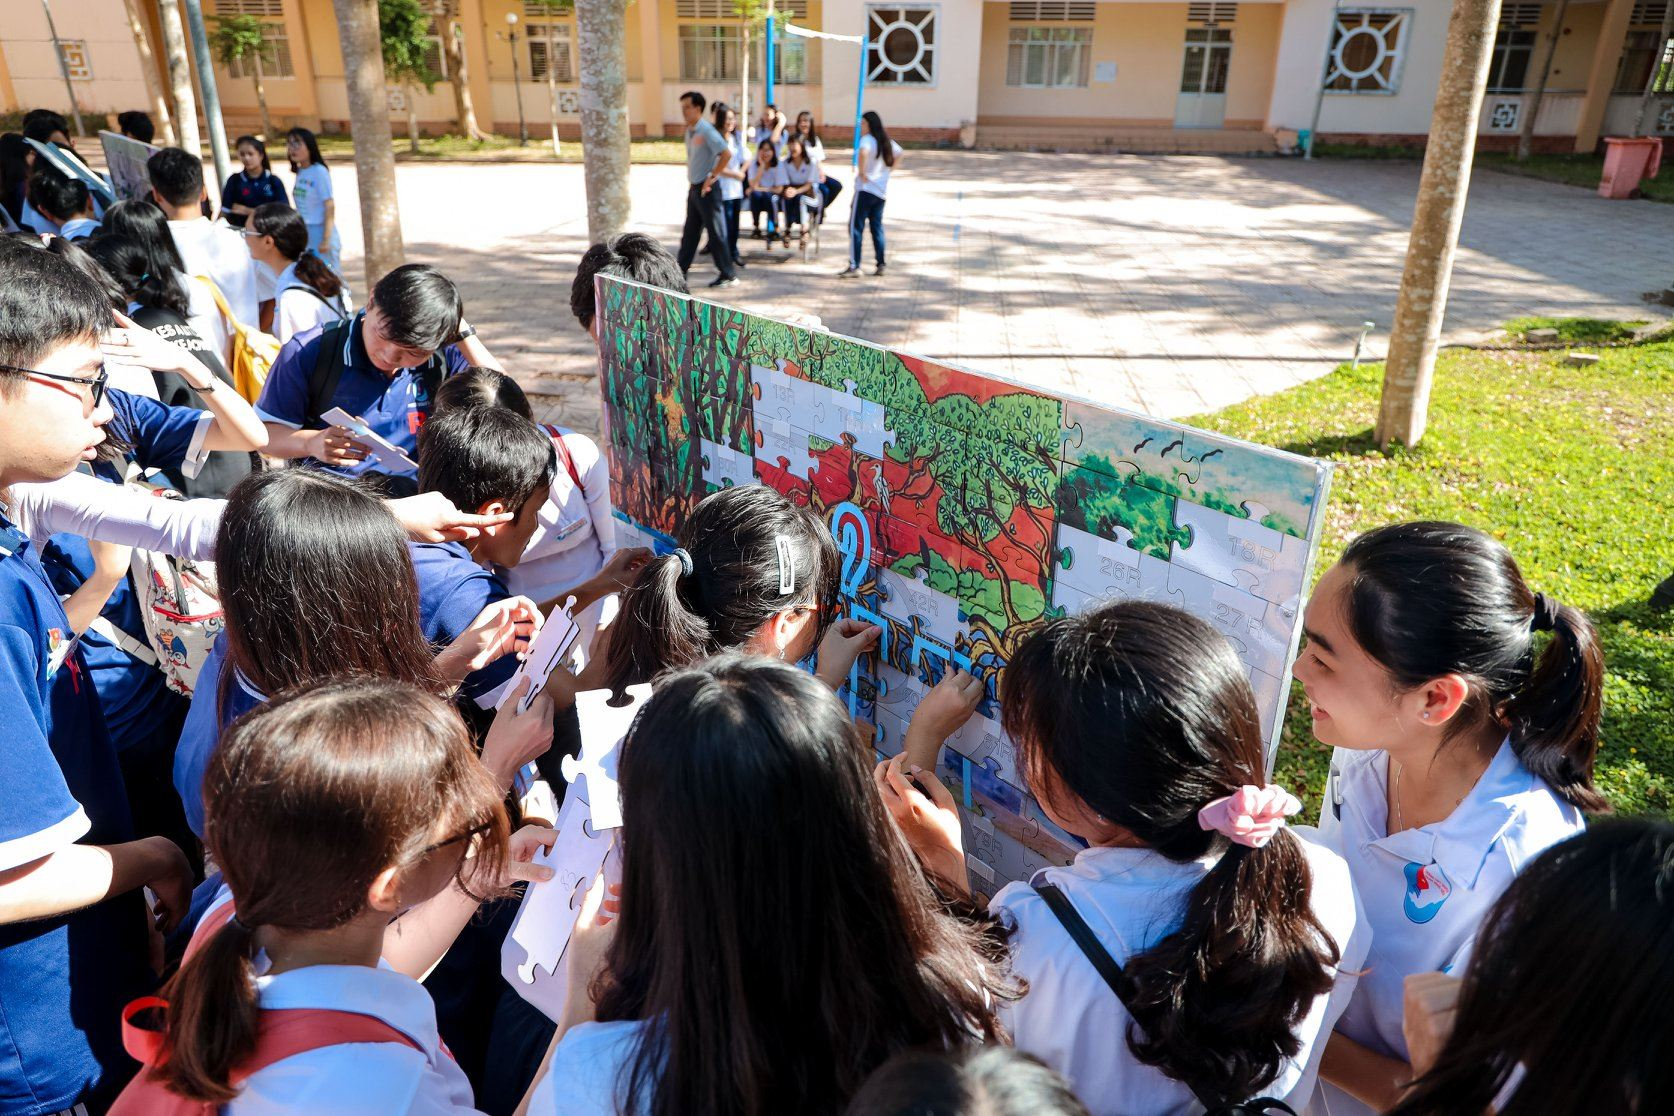 More than 1,000 students participated in the